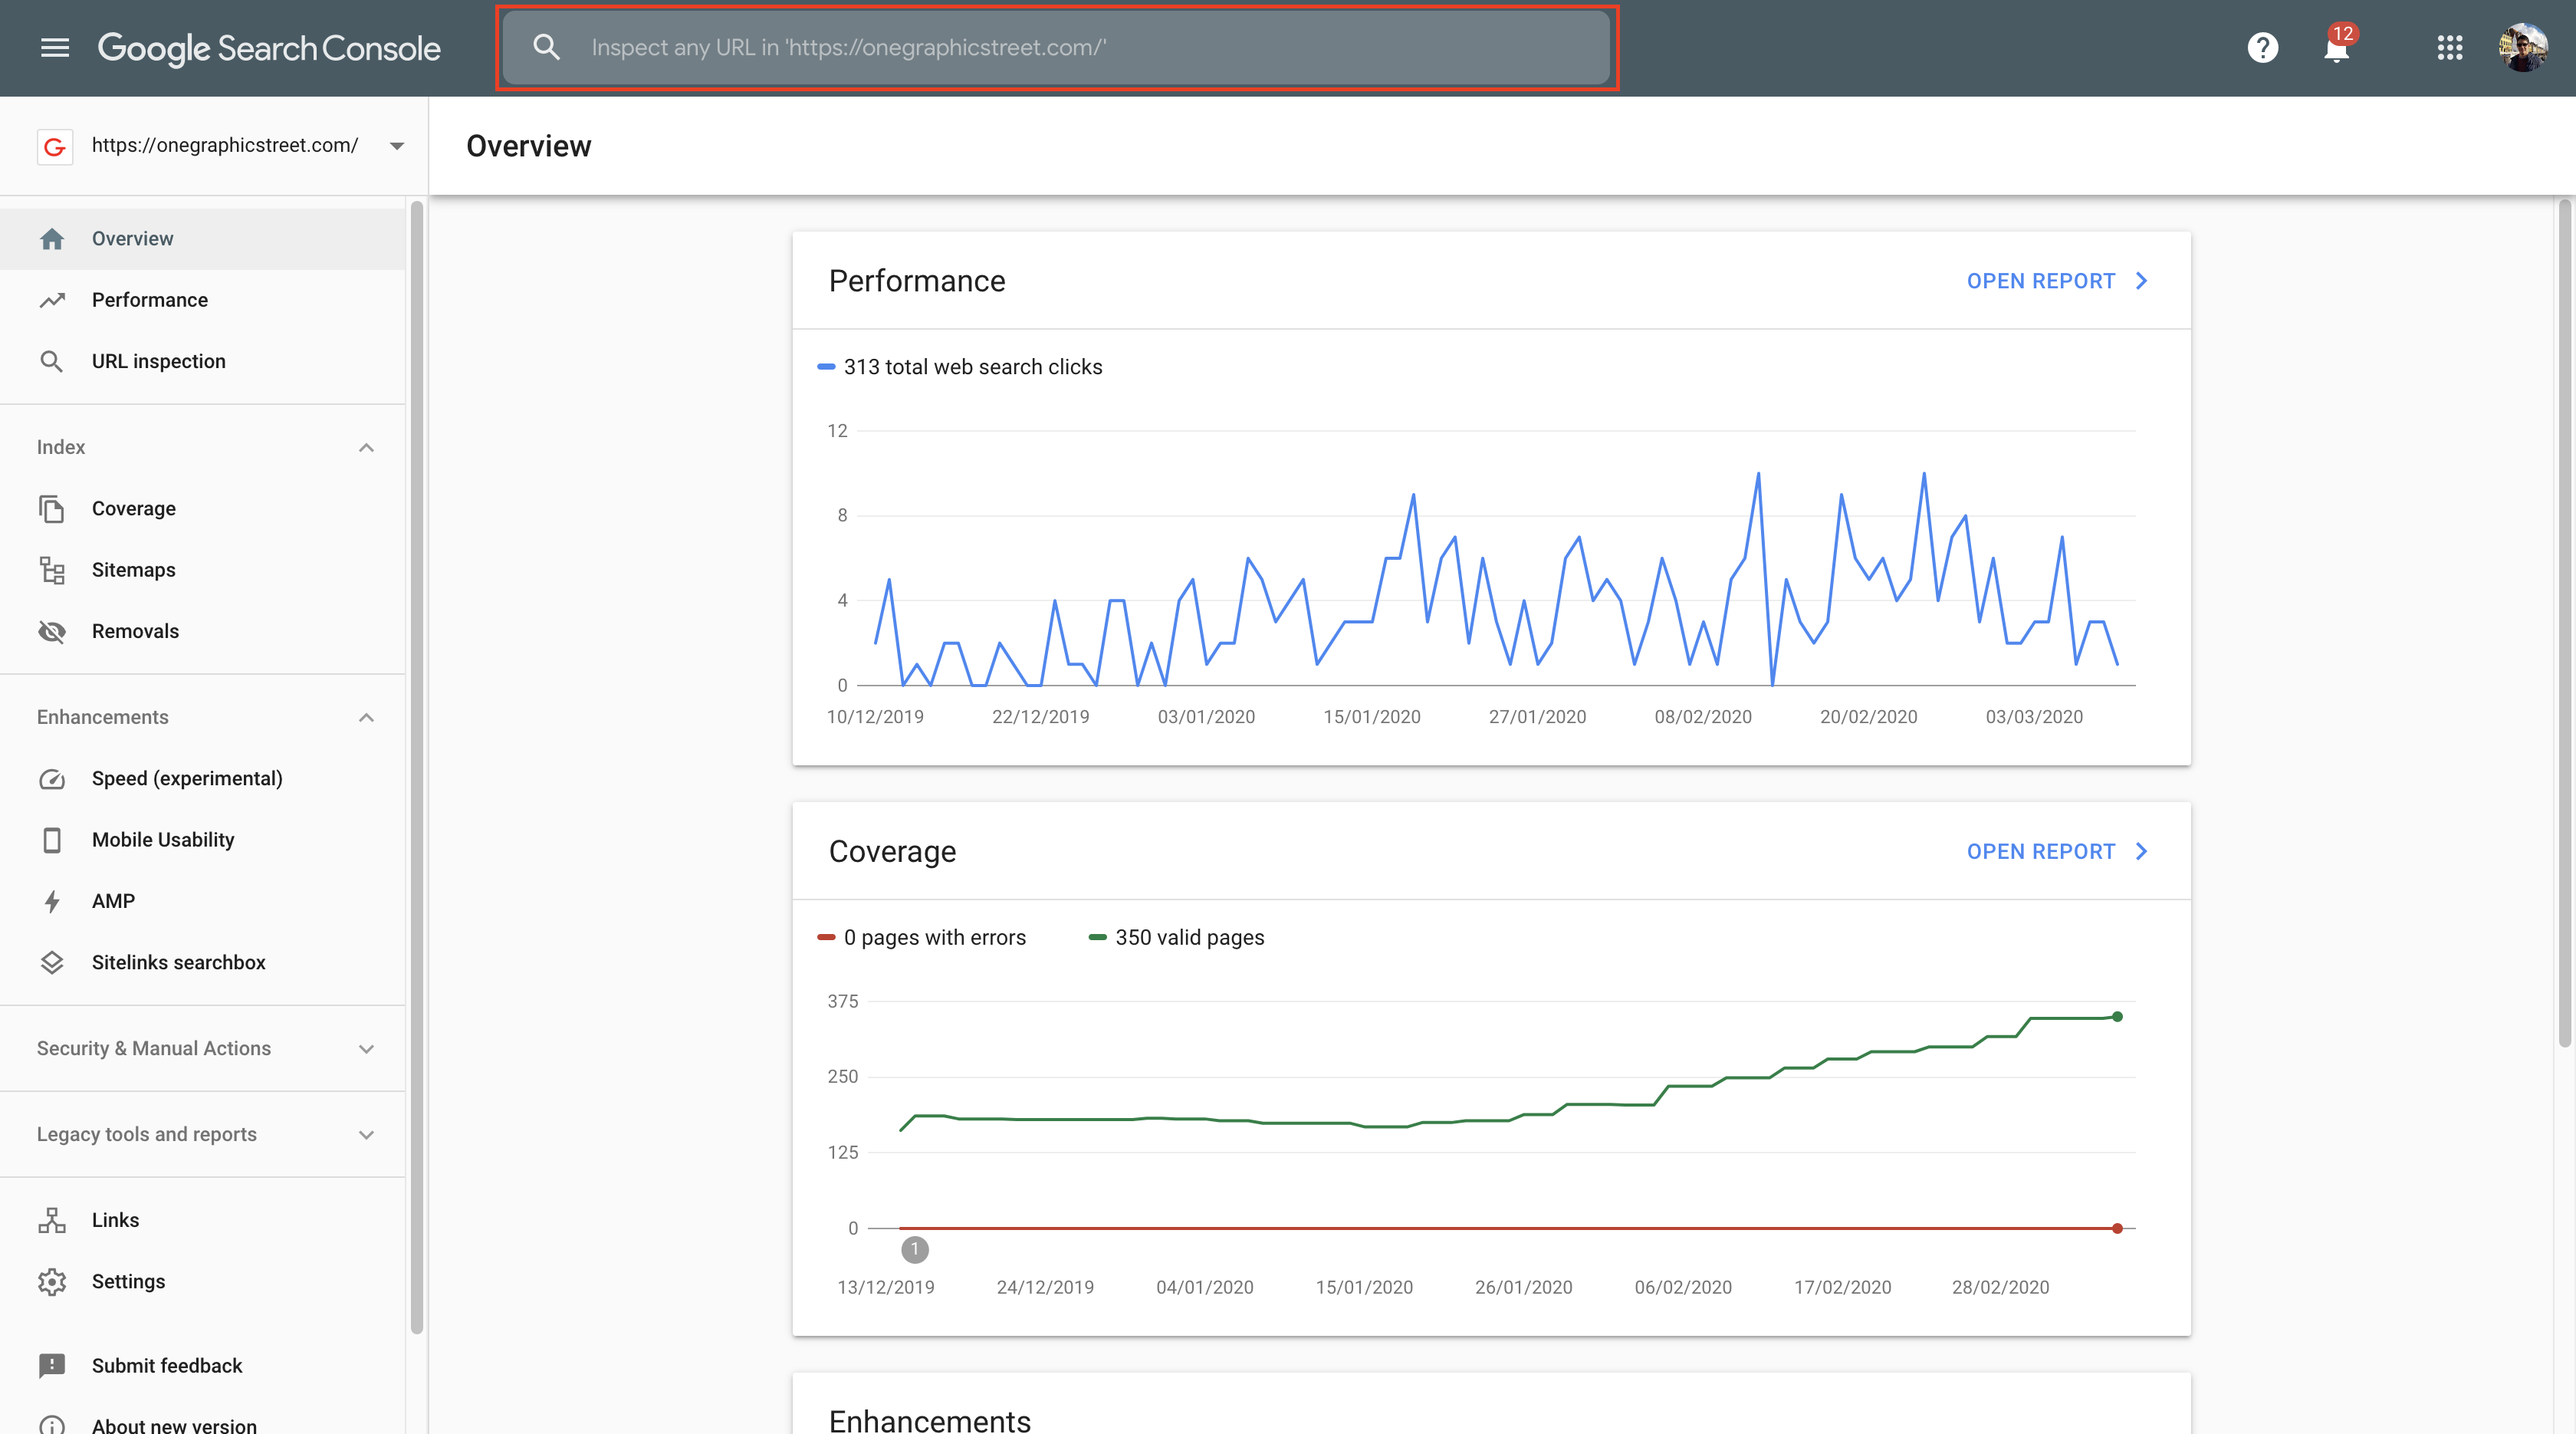 Google Search Console Overview Report